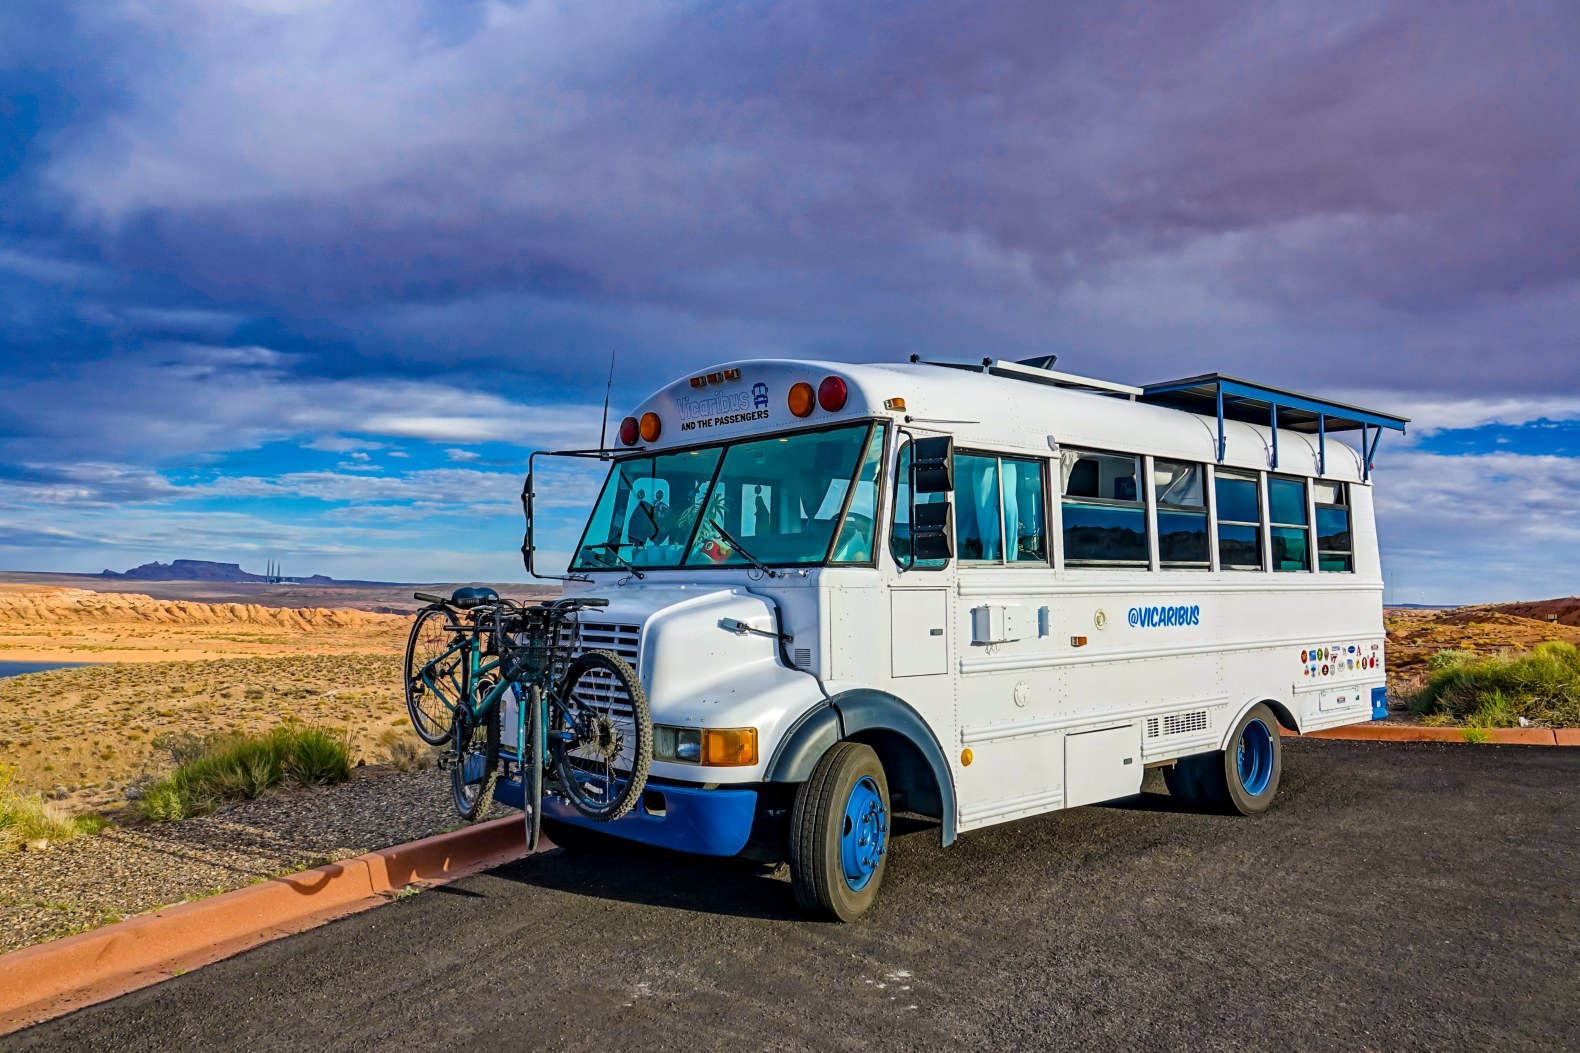 Couple convert a 20-year-old bus into a solar-powered tiny home on wheels